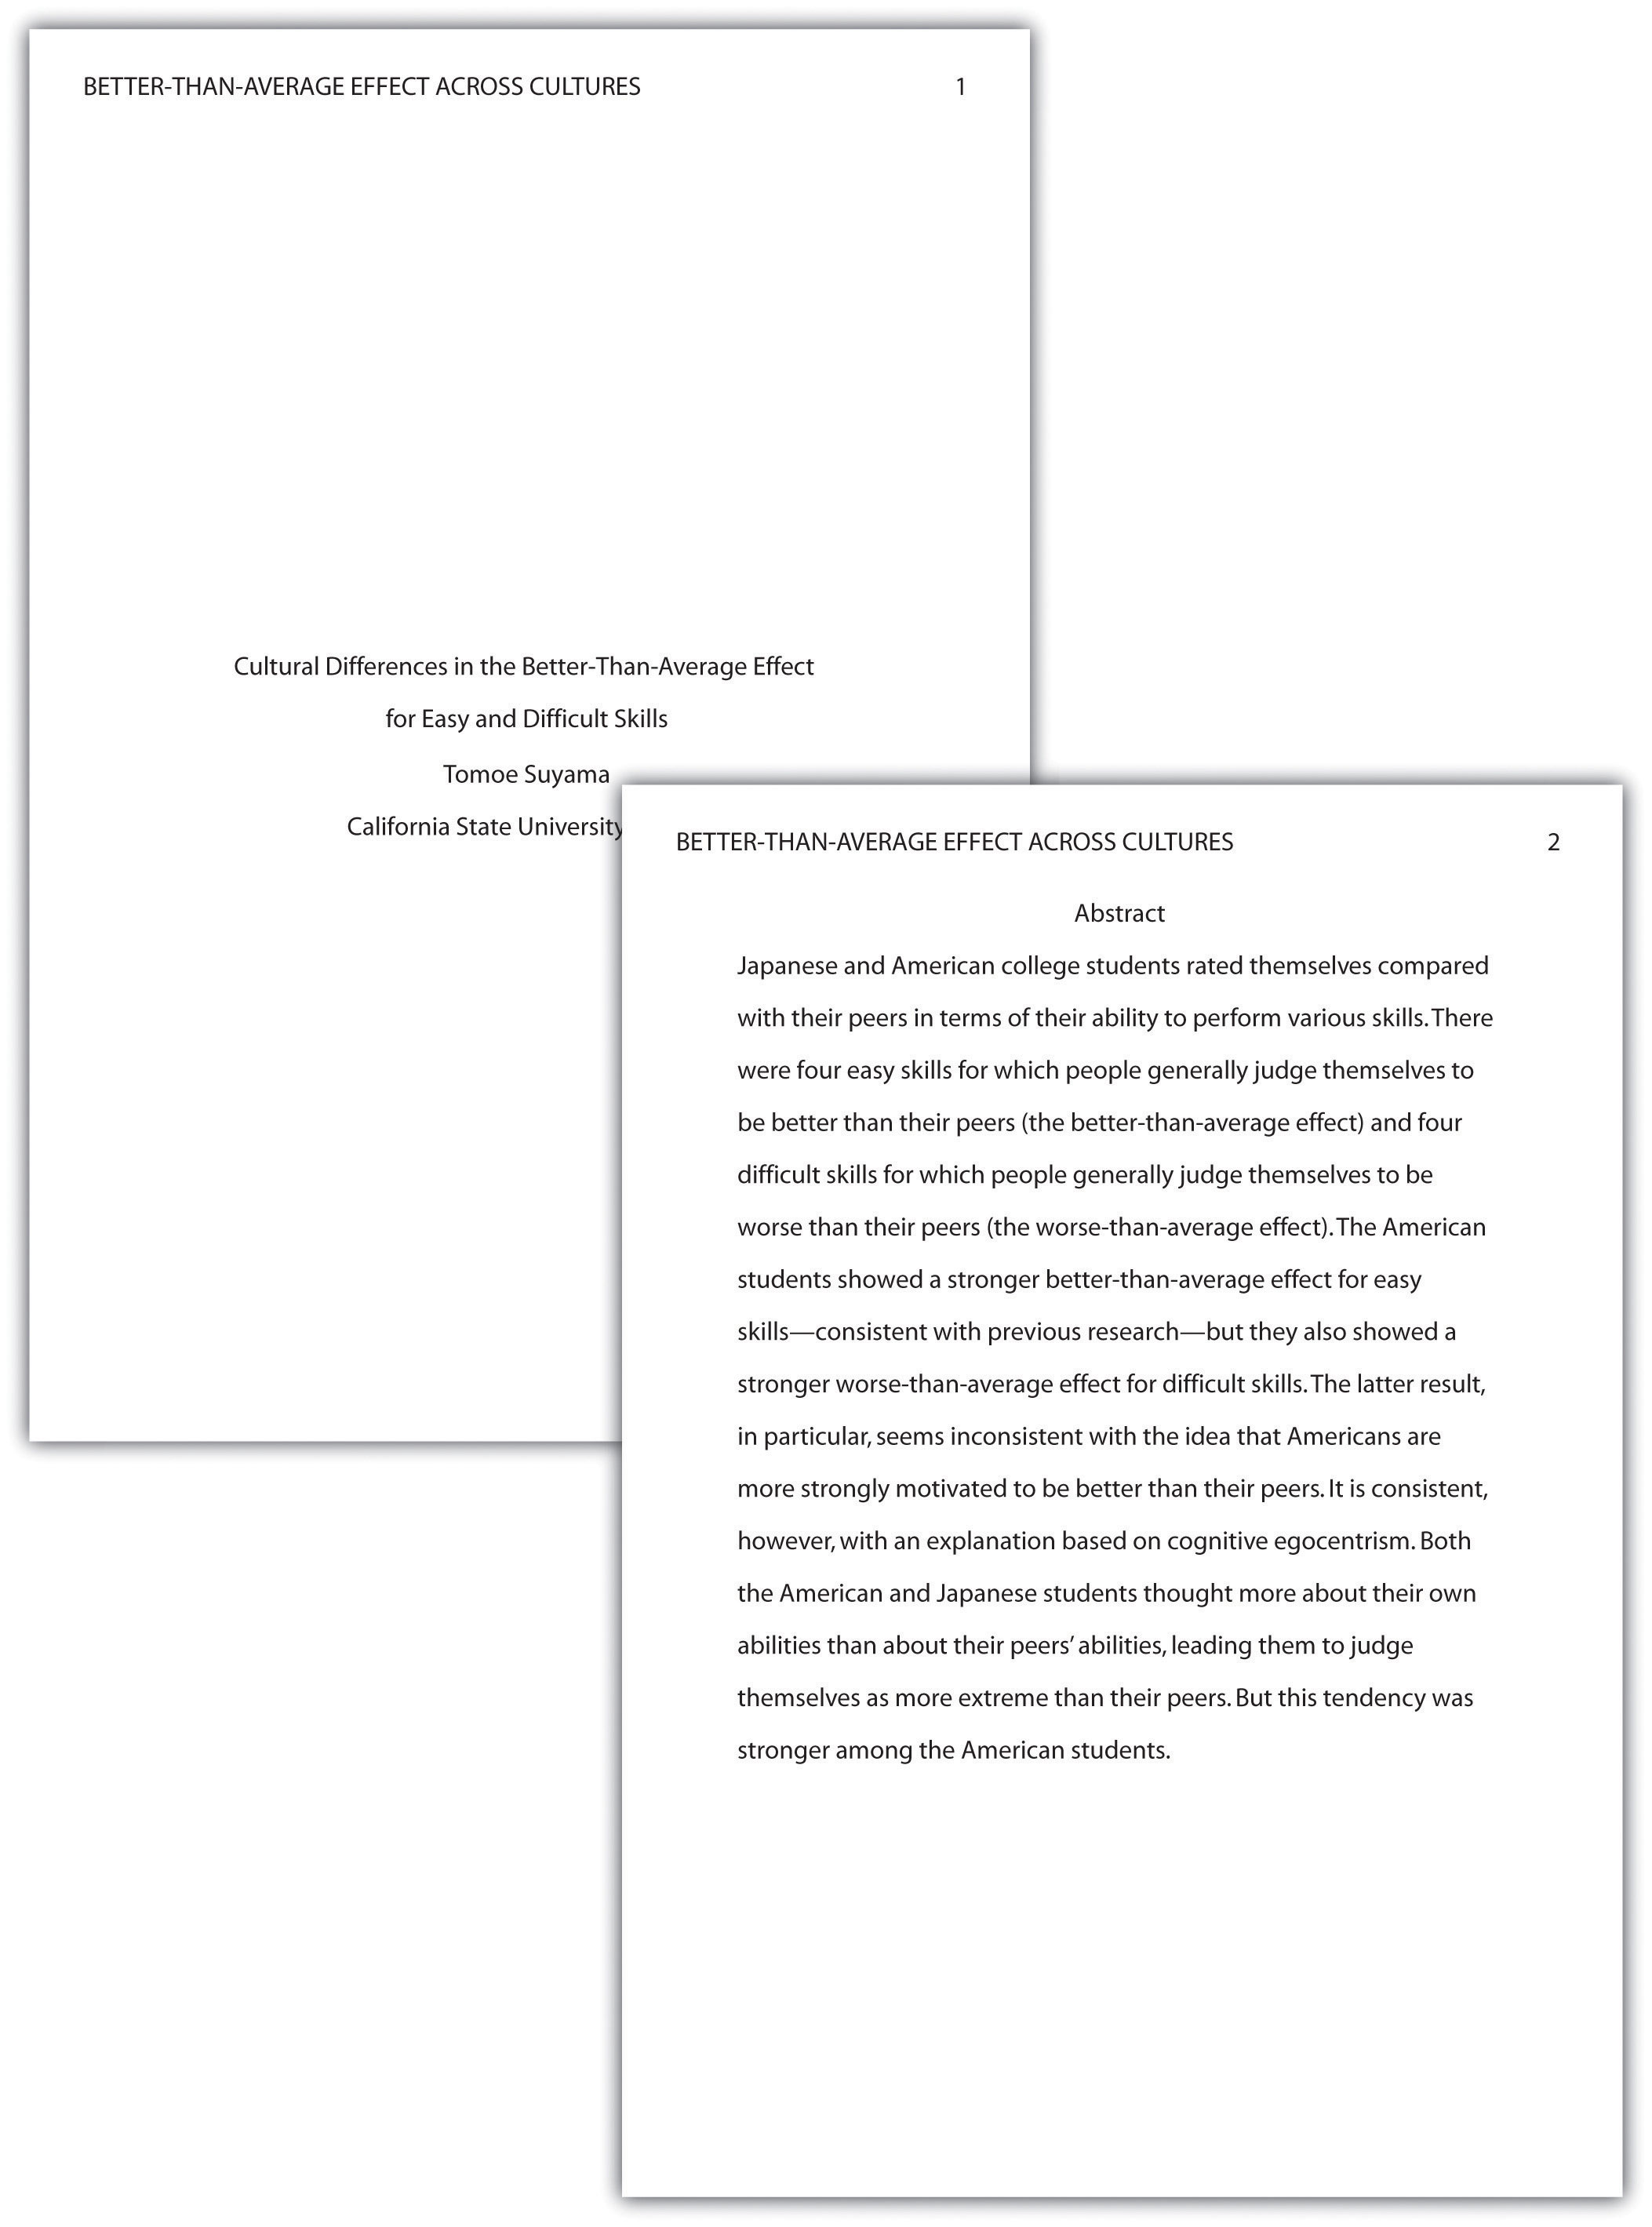 apa style essay reference page Formatting your essay: running heads, margins, heading levels, lists, tables, figures, table of contents, title page, serial comma and quotations (apa style does not.